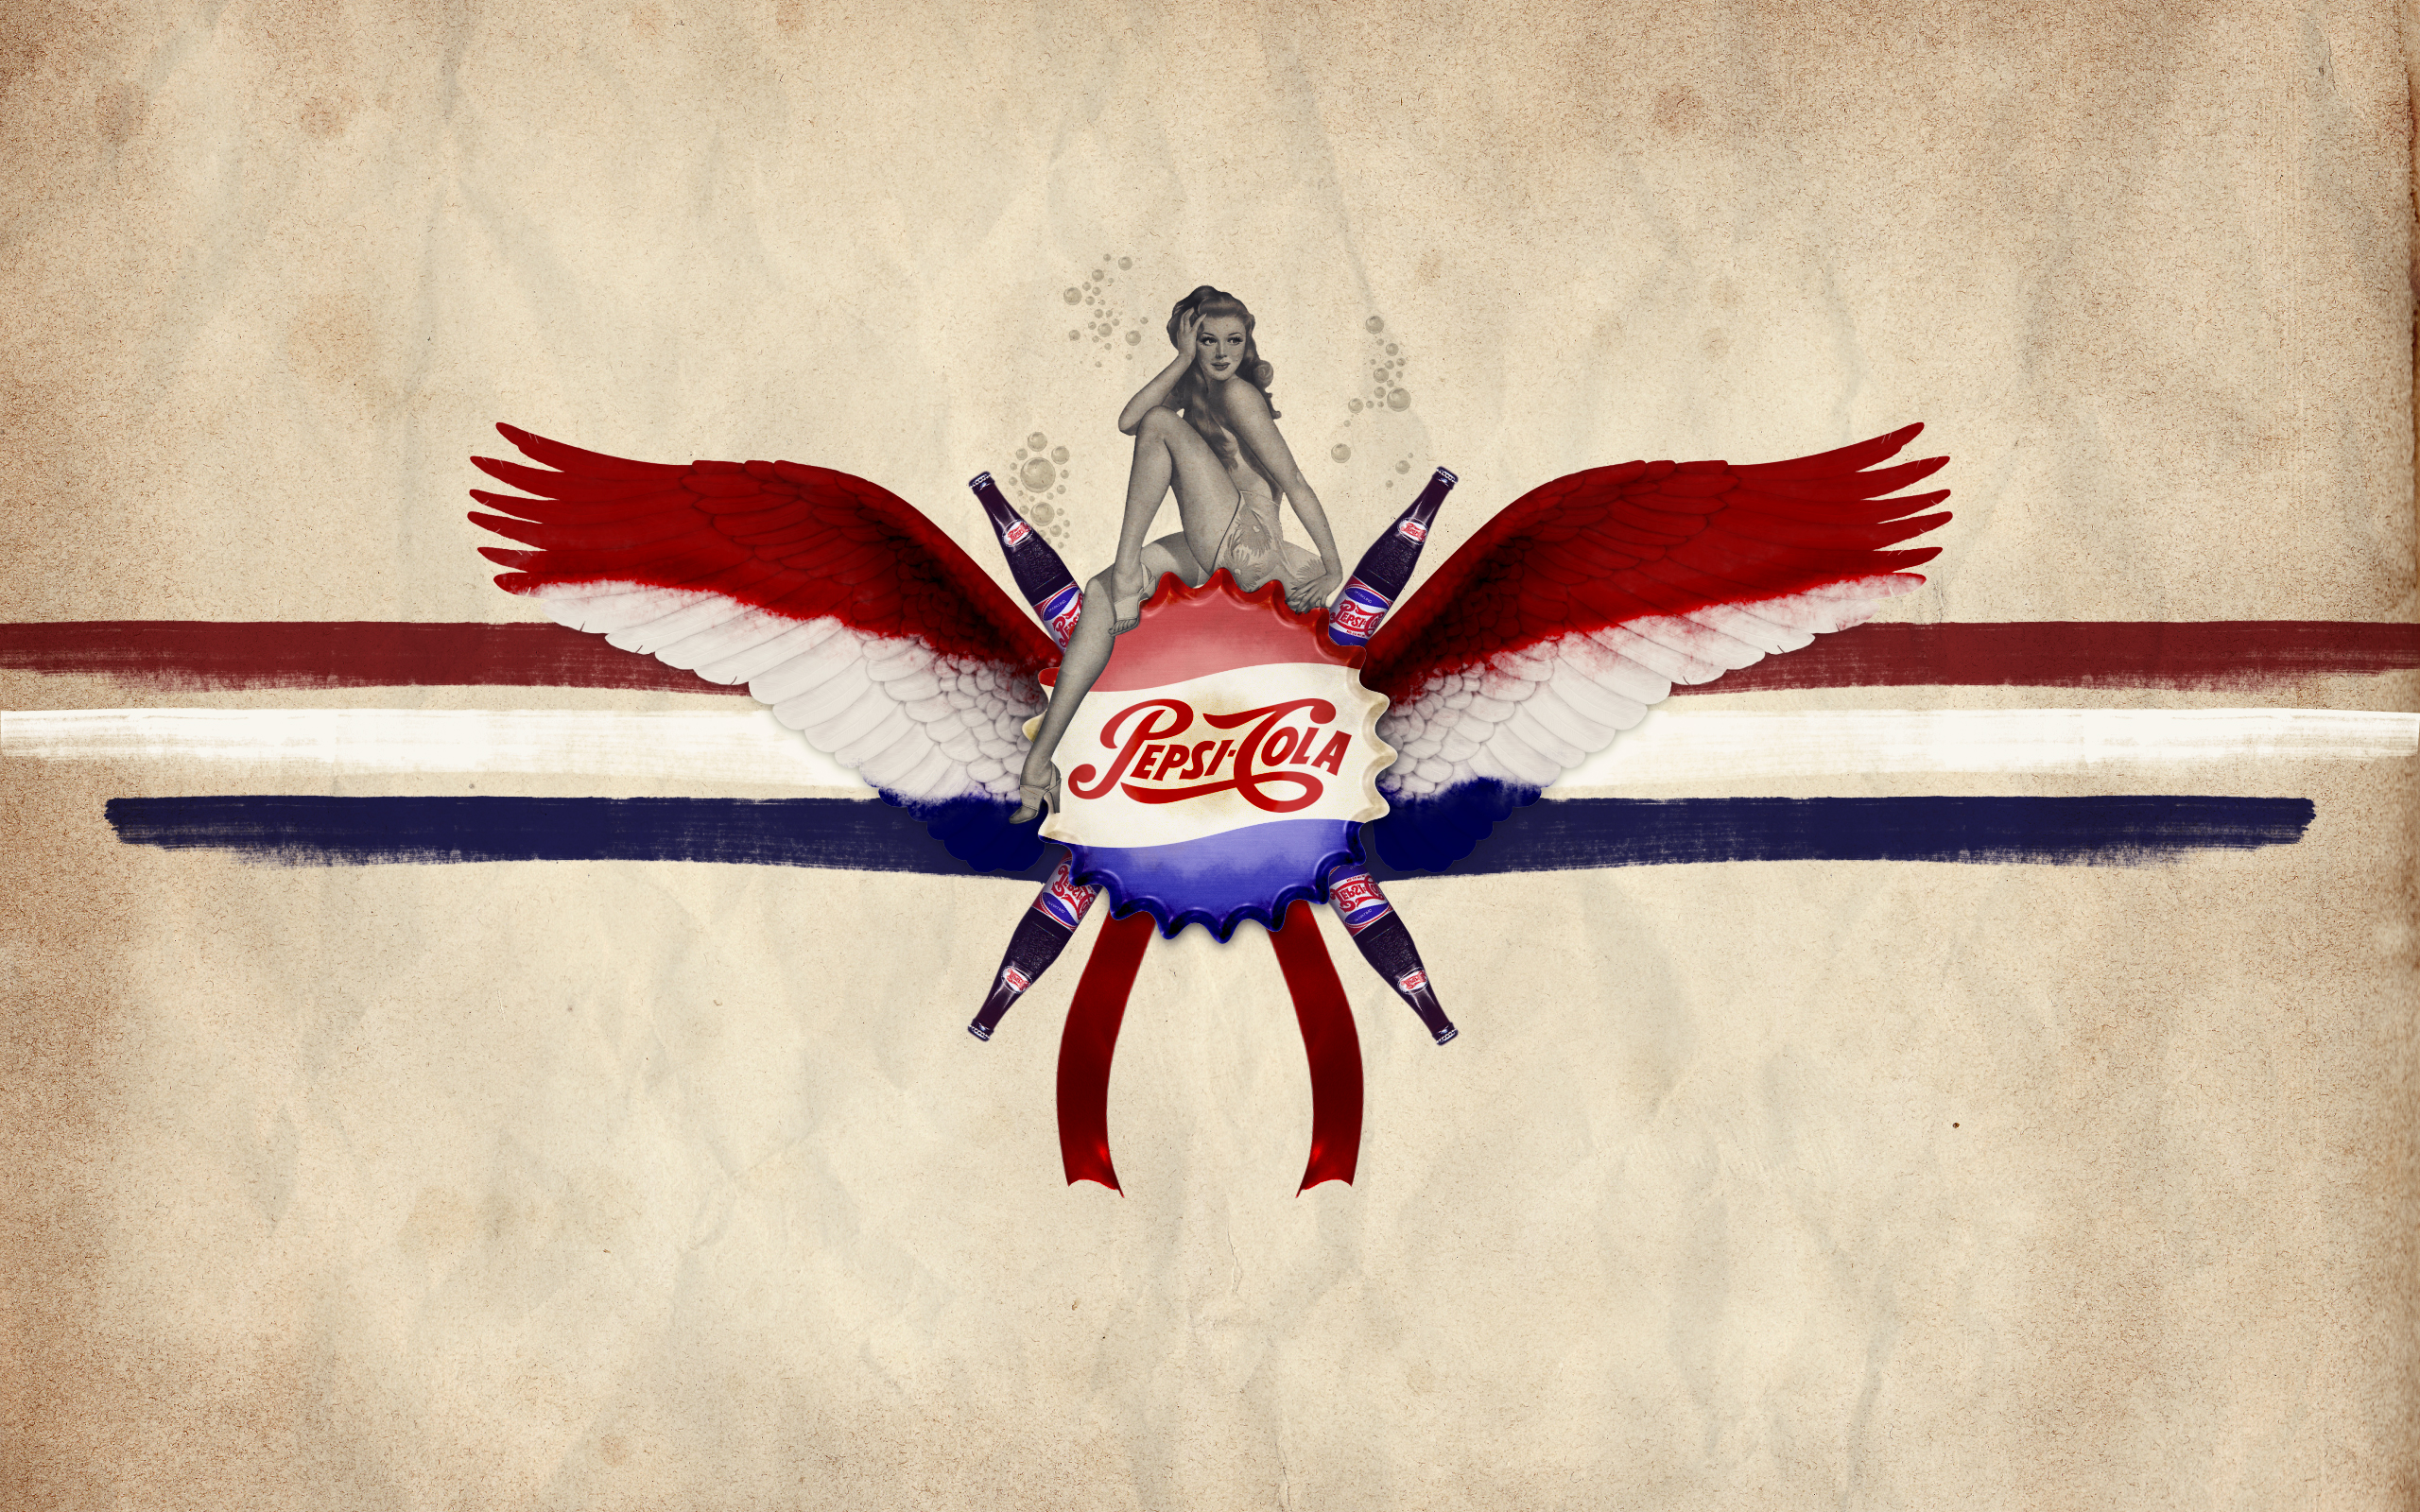 Pepsi cola Abstract OldtimeWallpaperscom   Antique wallpapers 2560x1600